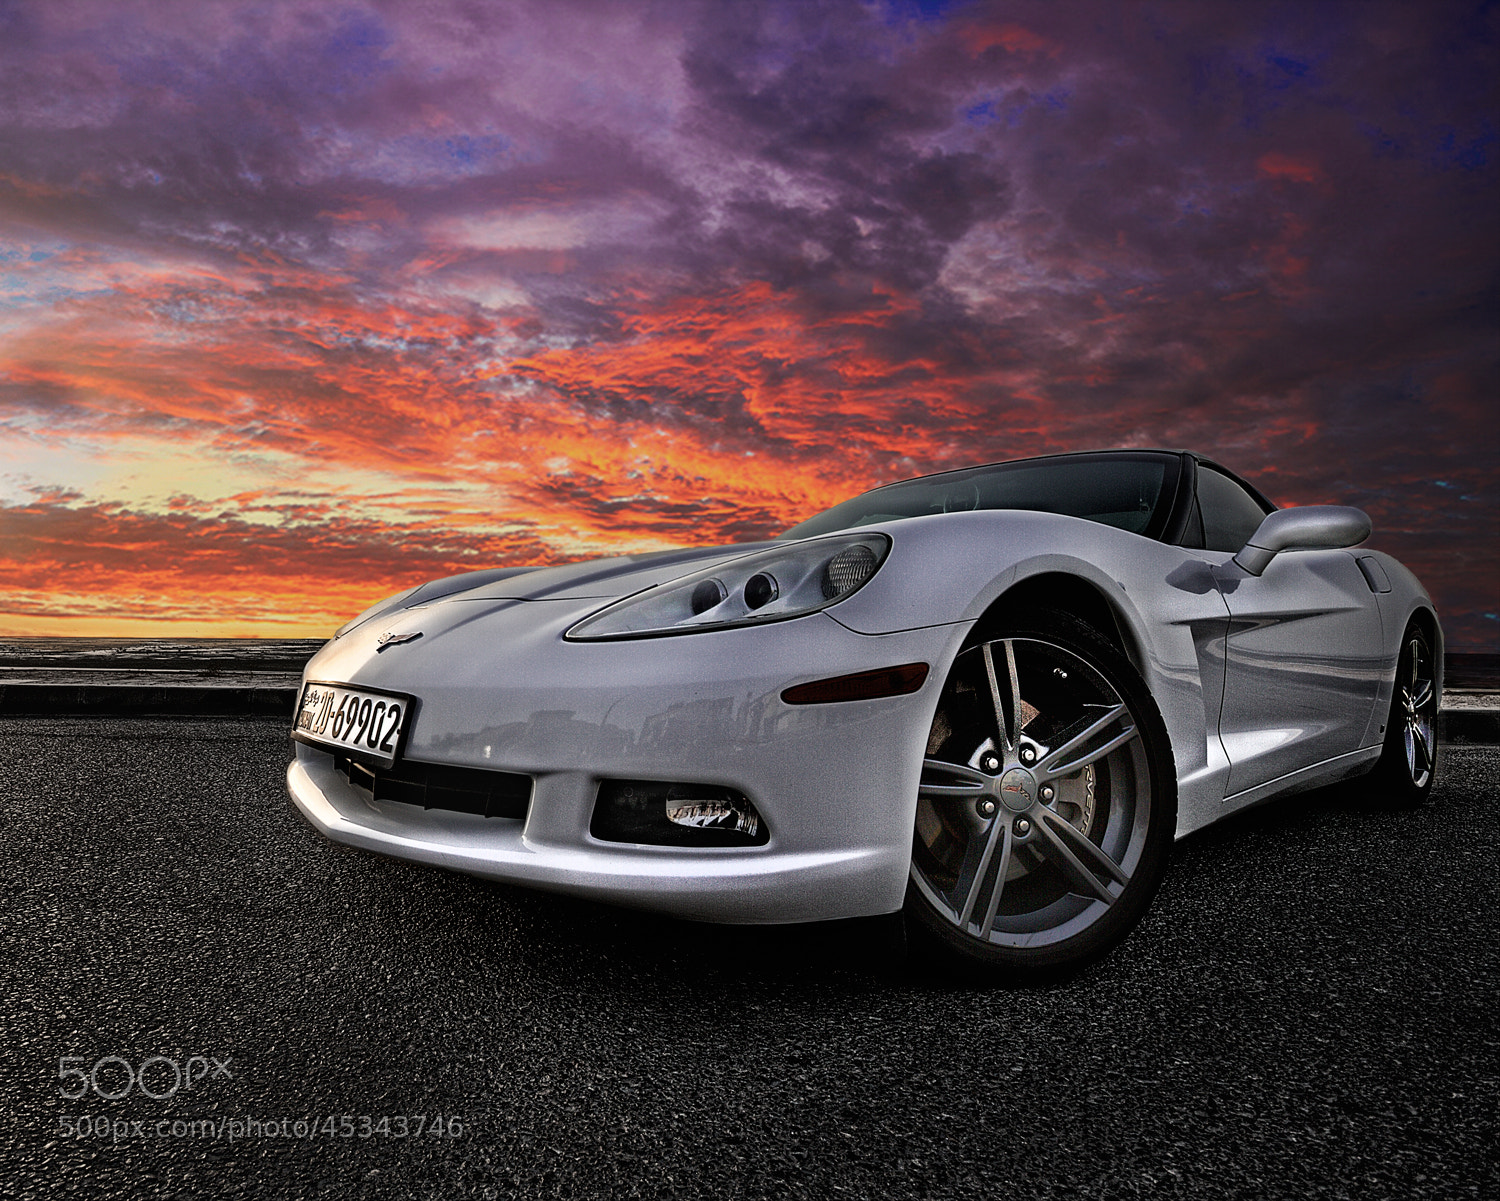 Photograph Corvette by bader Al Hattab on 500px